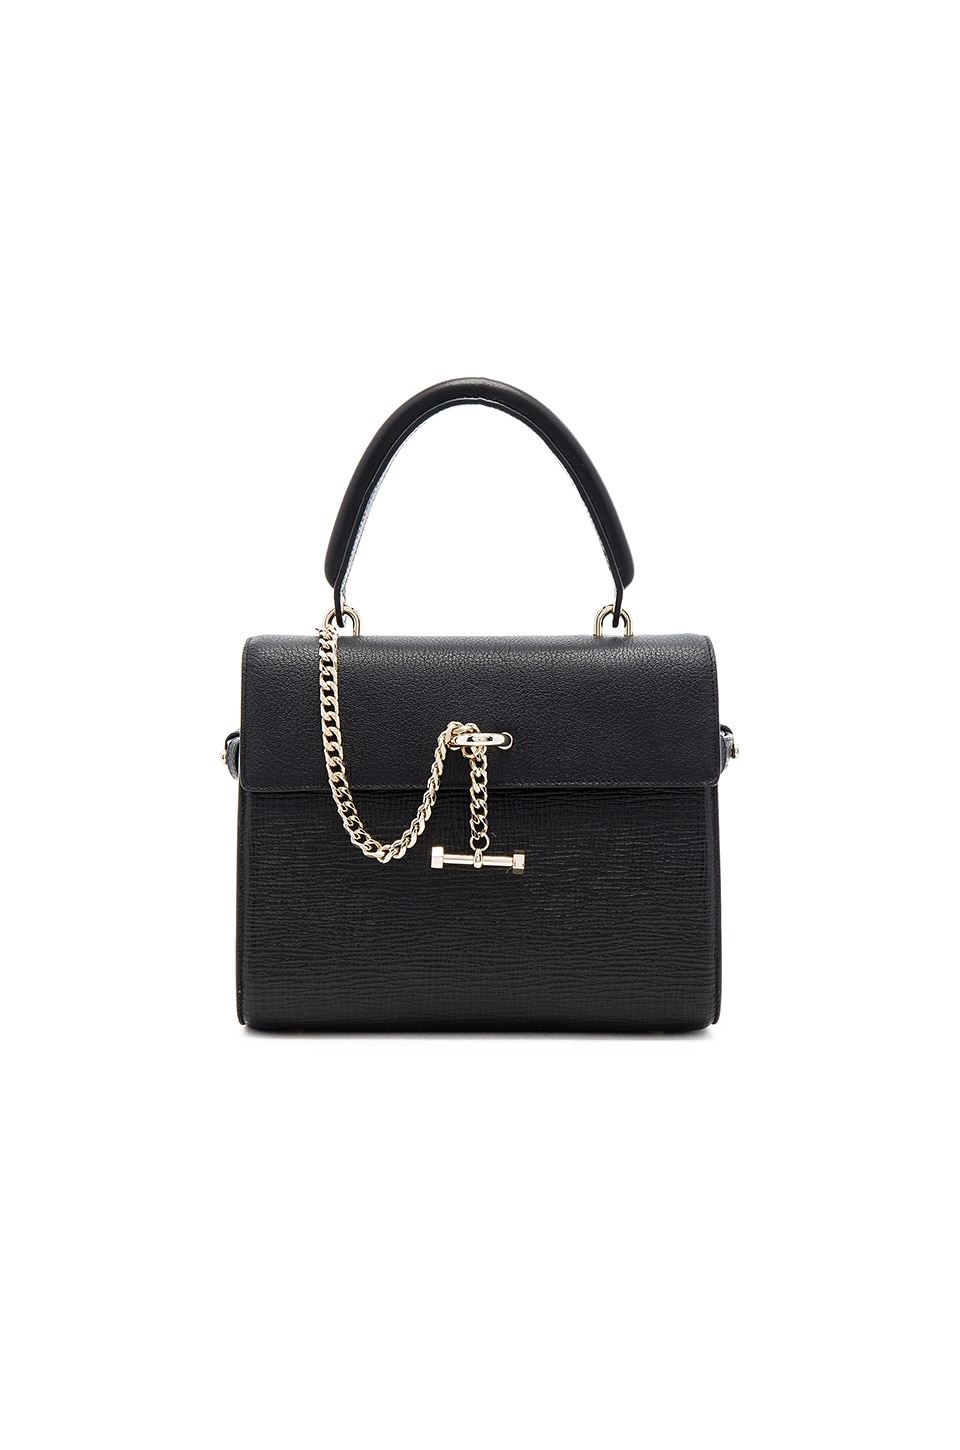 Luana Italy Paley Mini Satchel Bag in Ebony